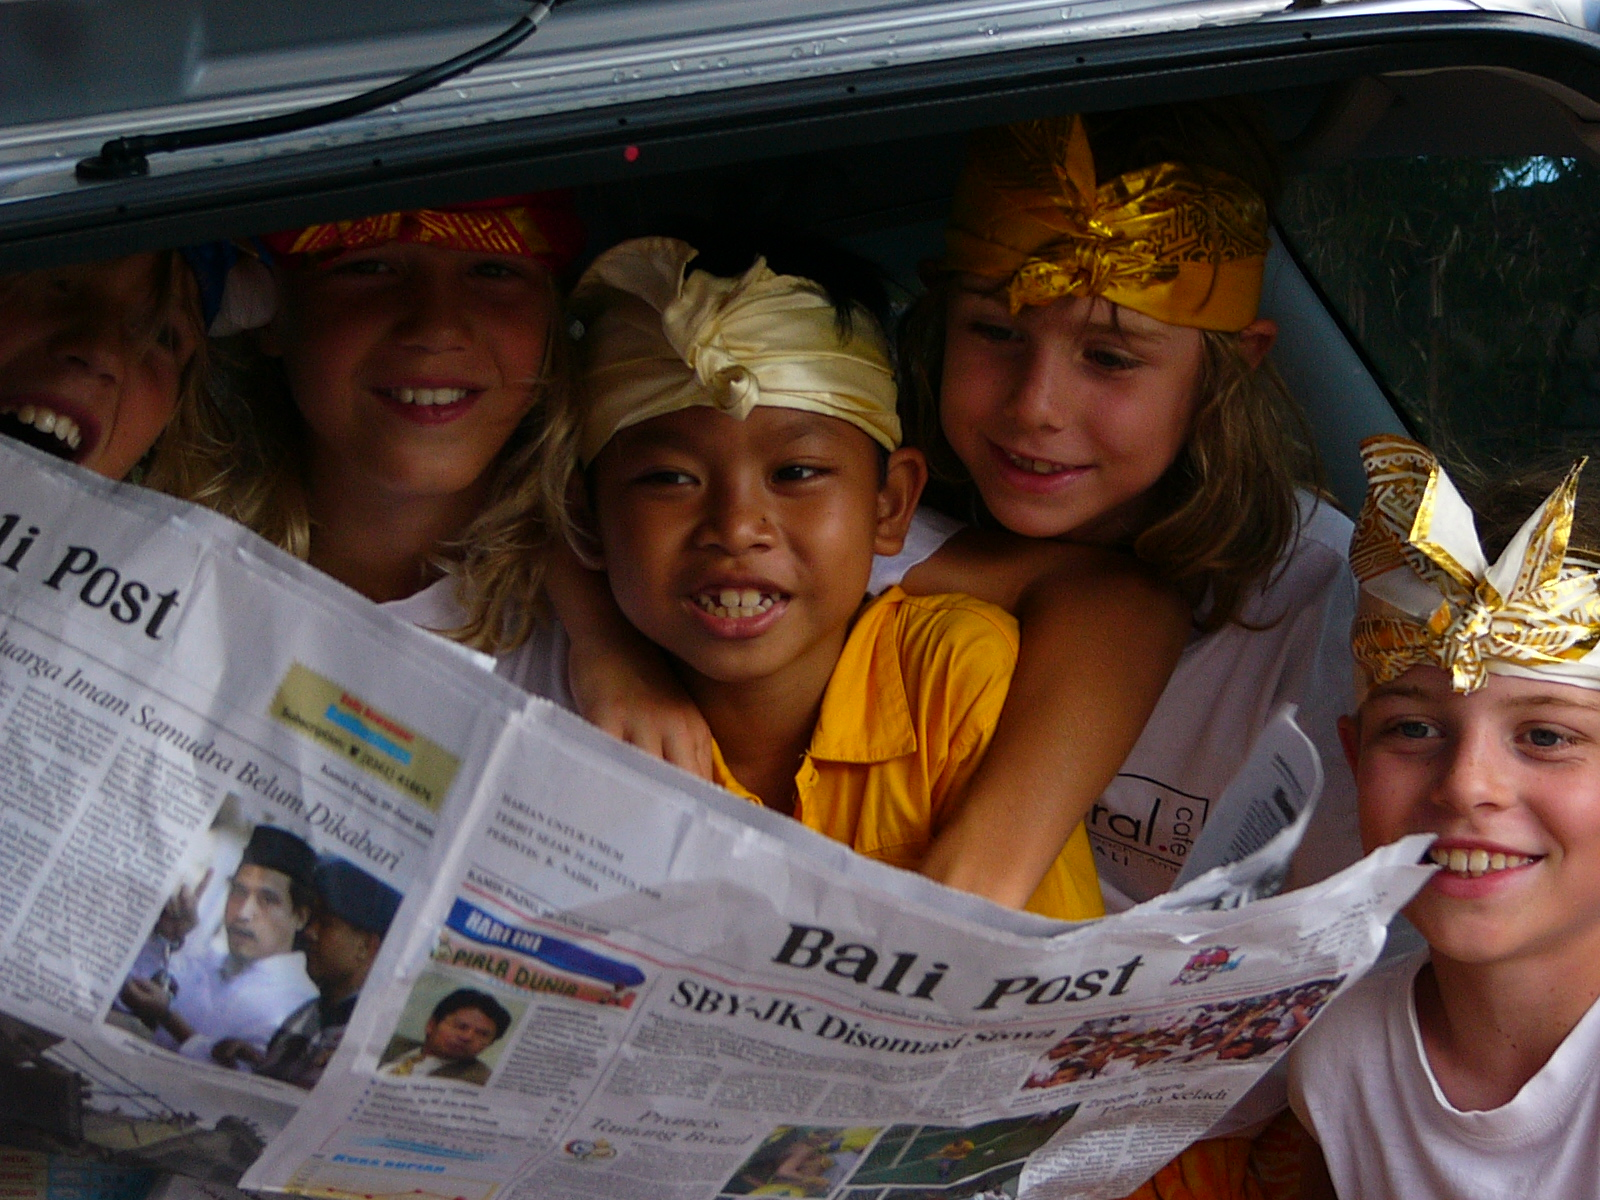 Kids reading newspaper